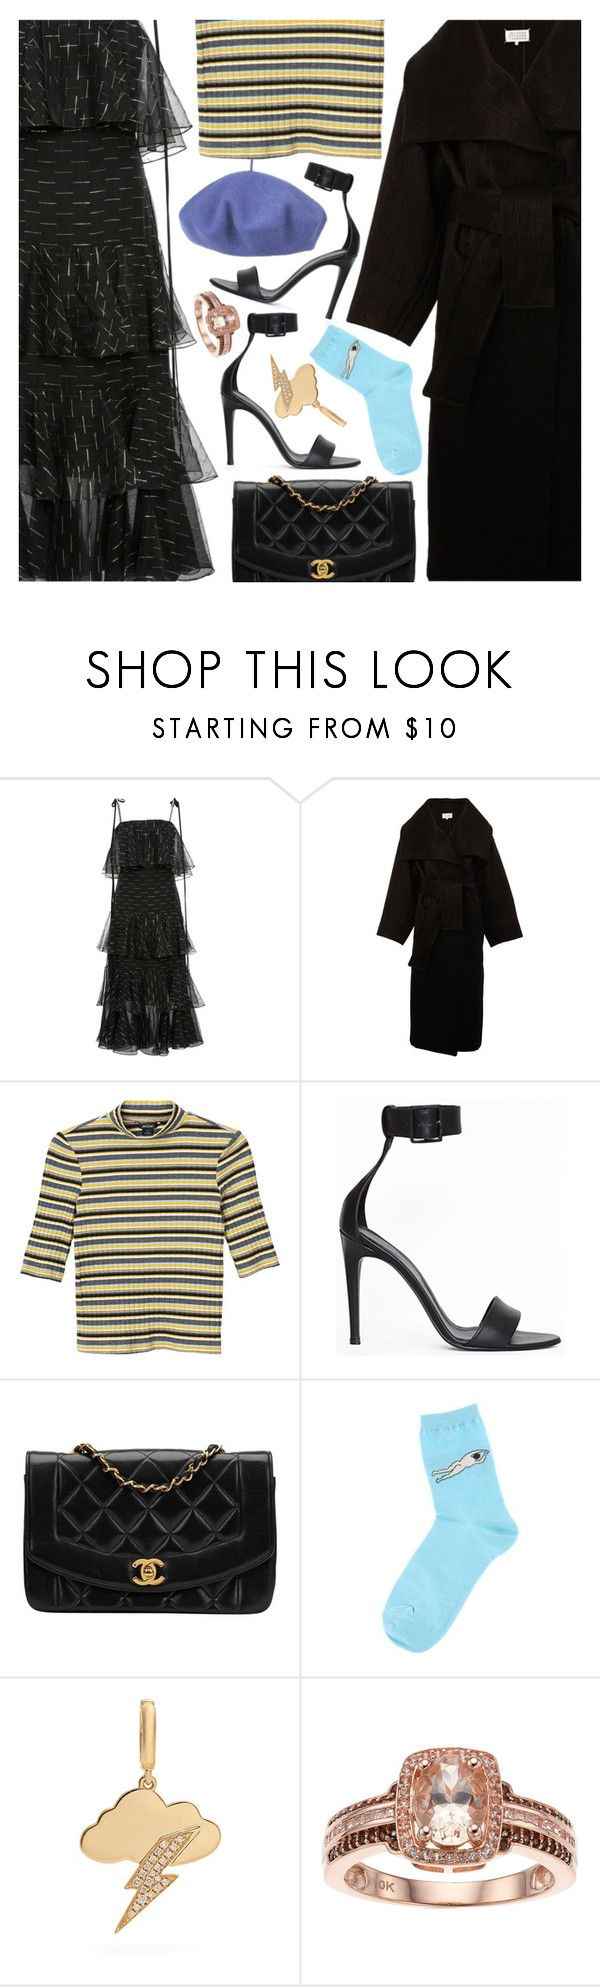 """Untitled #7304"" by amberelb ❤ liked on Polyvore featuring Johanna Ortiz, Maison Margiela, Monki, TIBI, Chanel, Annoushka and Betmar"